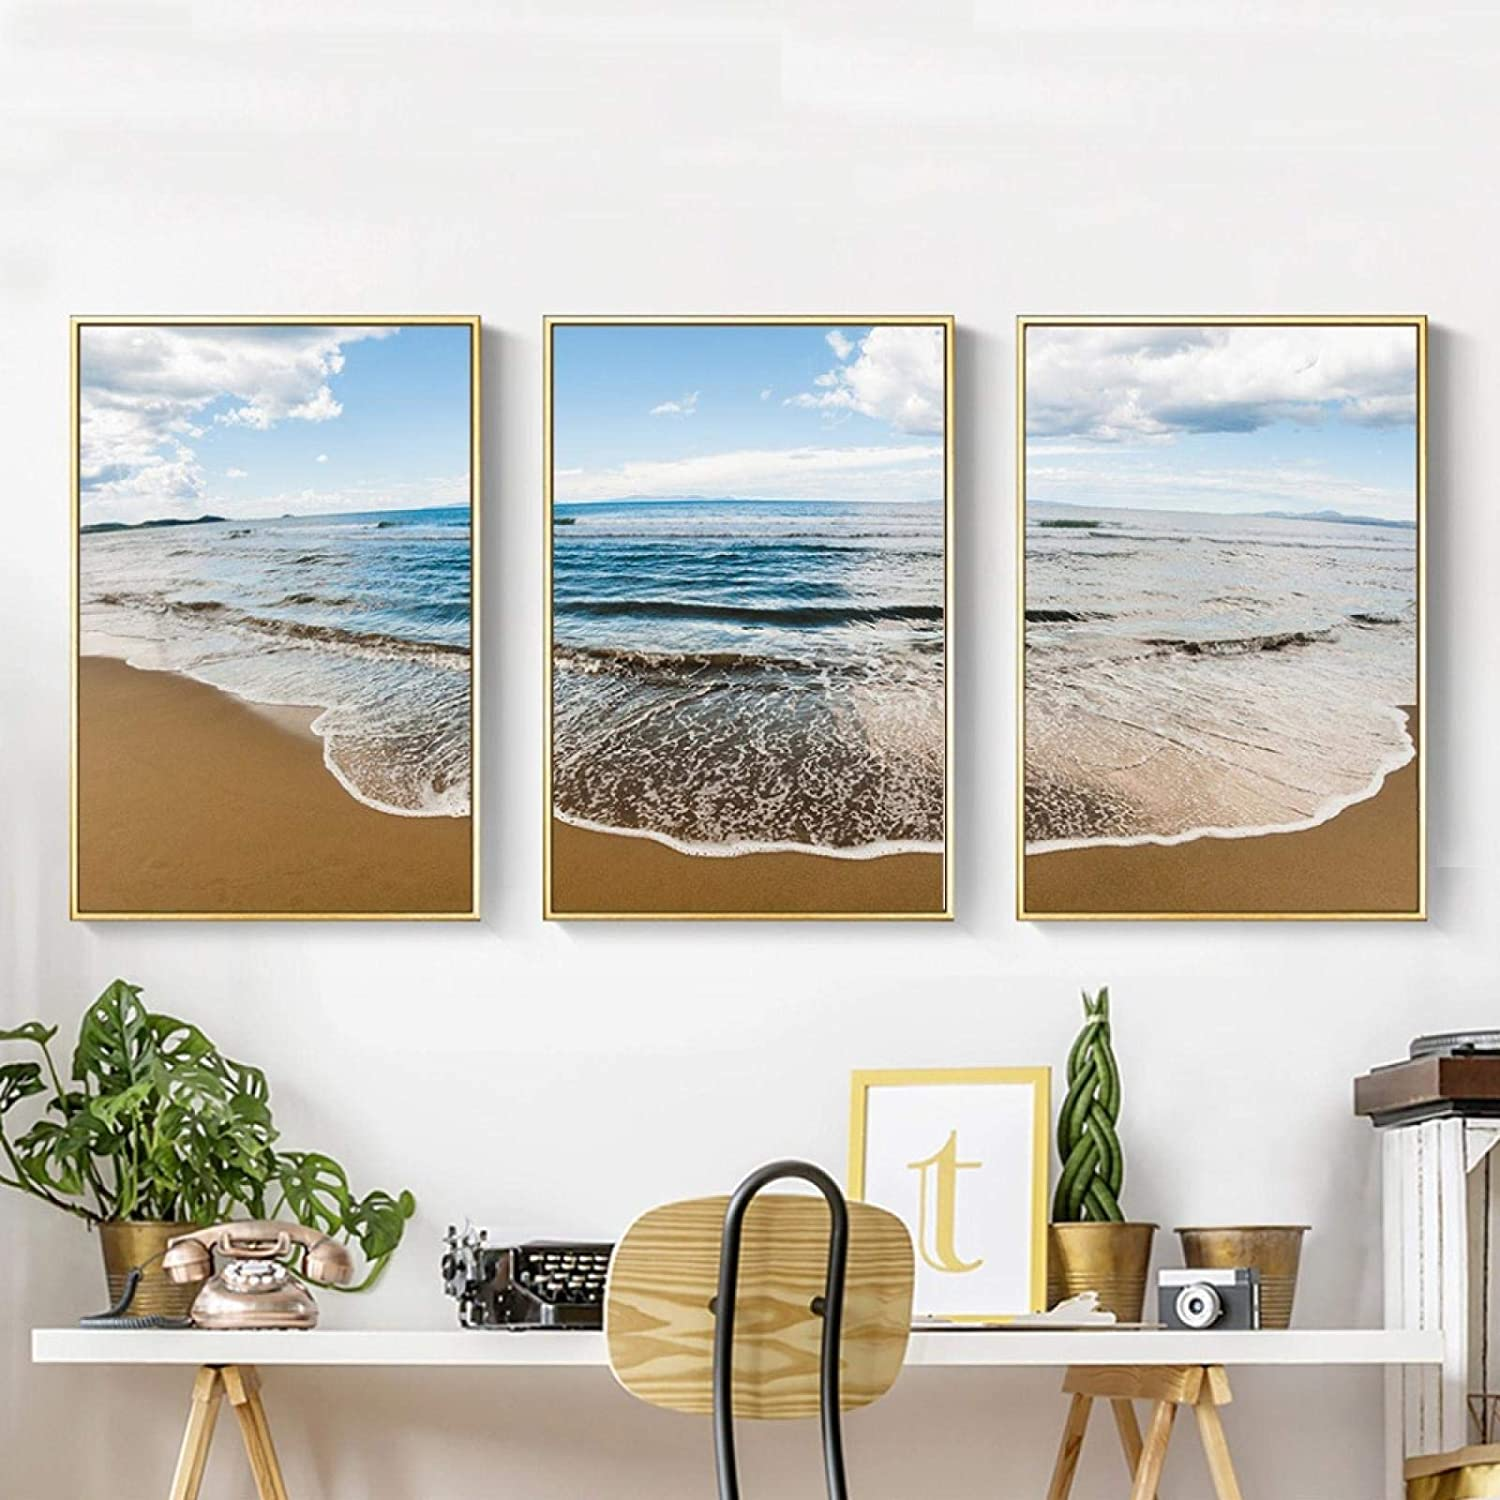 Style Sea and Beach Landscape Wall Outlet Cash special price SALE Poster Print Canvas C Art